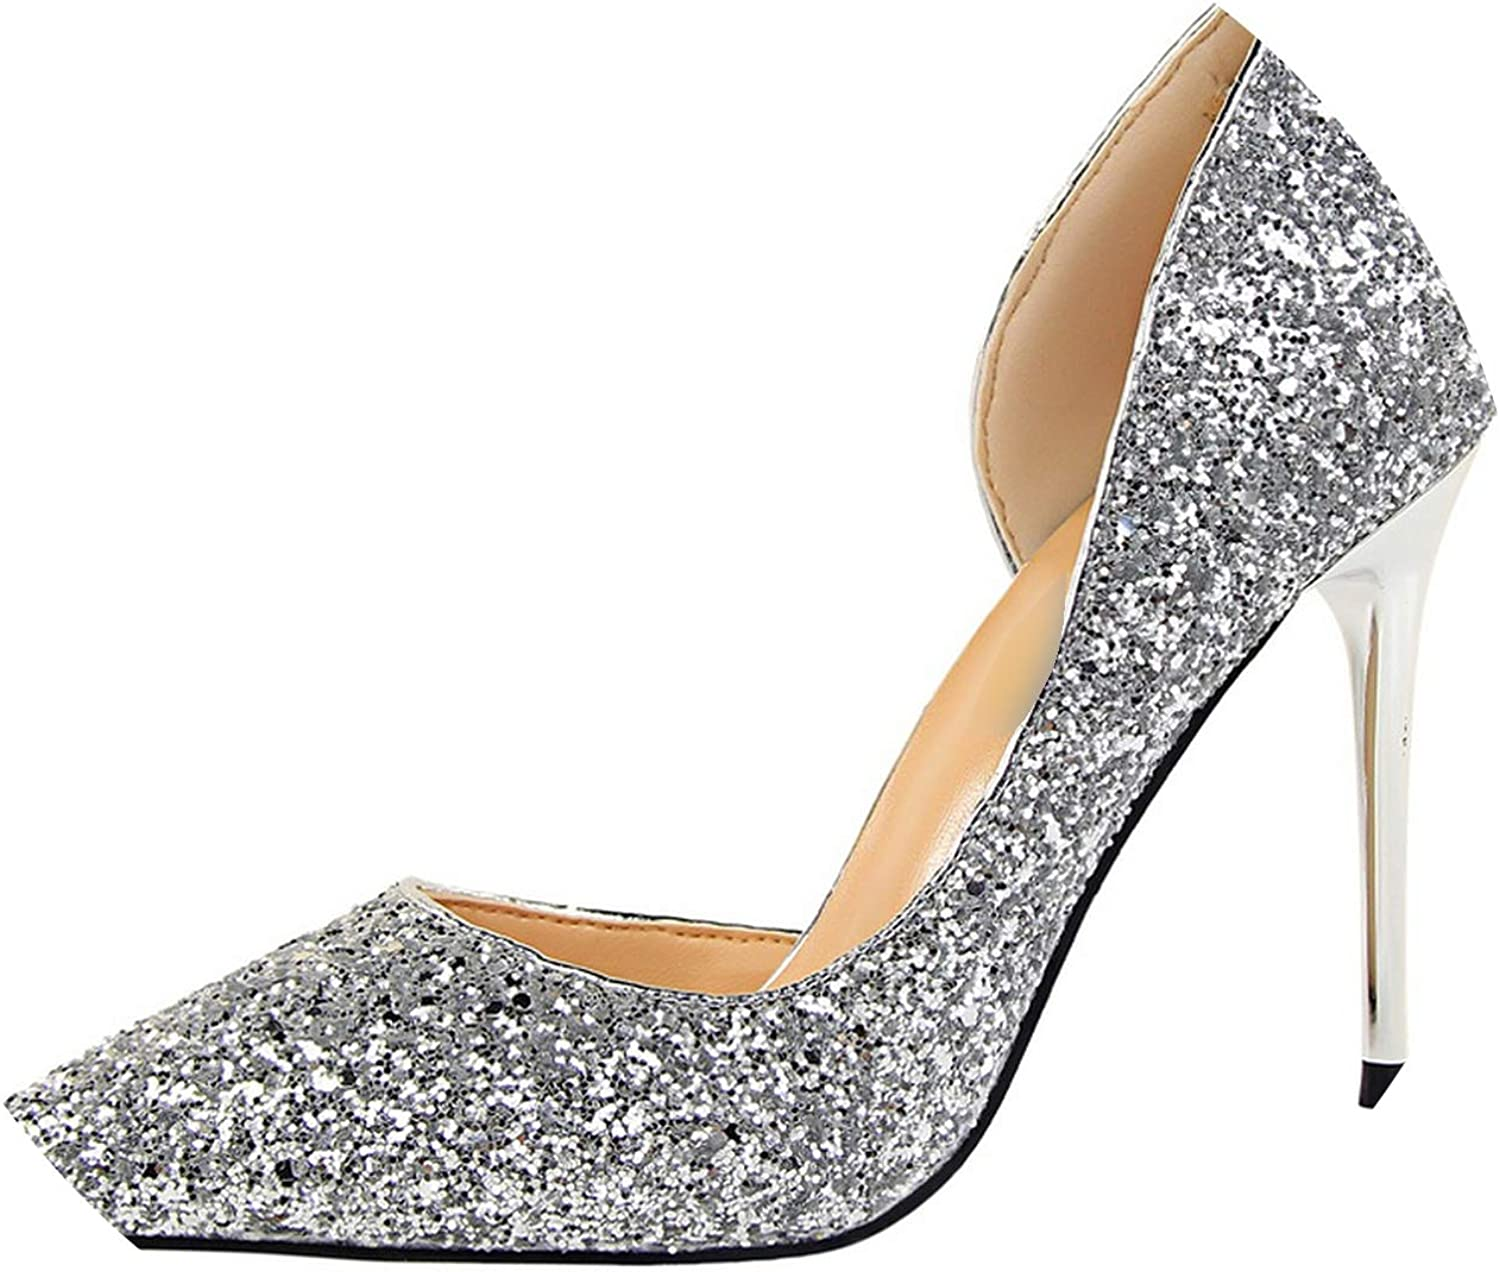 High Heels Fashion Women Pumps New Sequined Cloth Heels Sexy Wedding Party shoes Office Ladies shoes